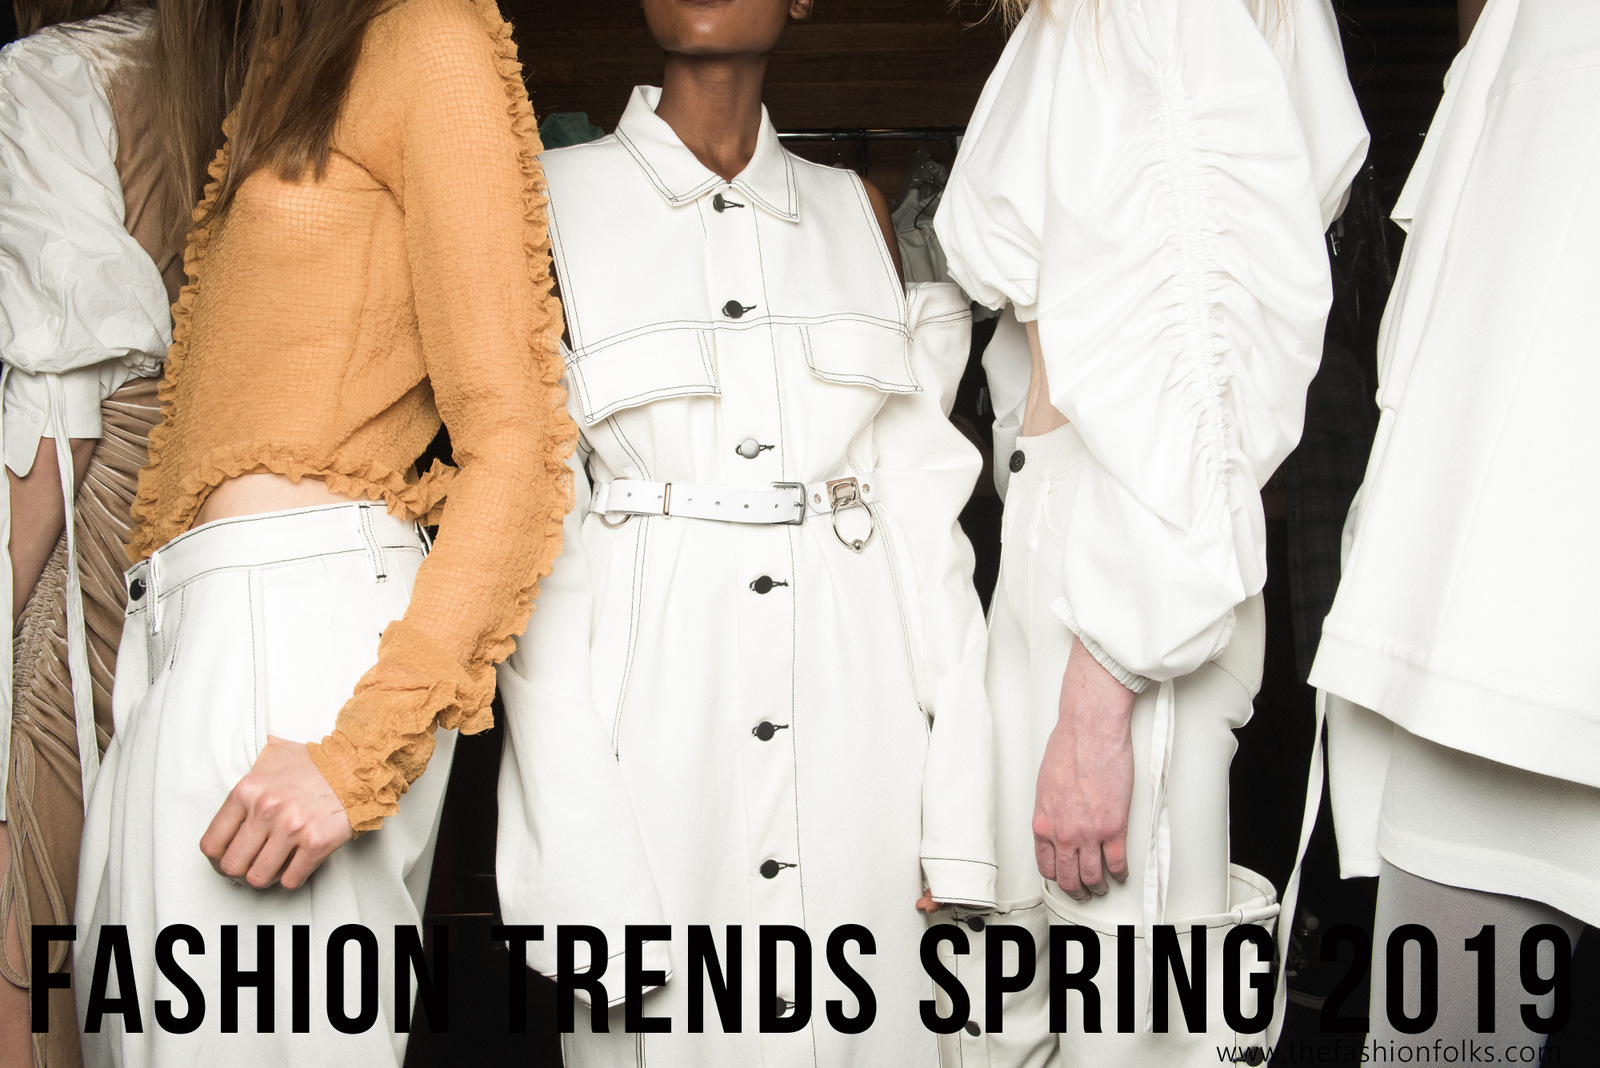 Preview: Fashion Trends Spring 2019